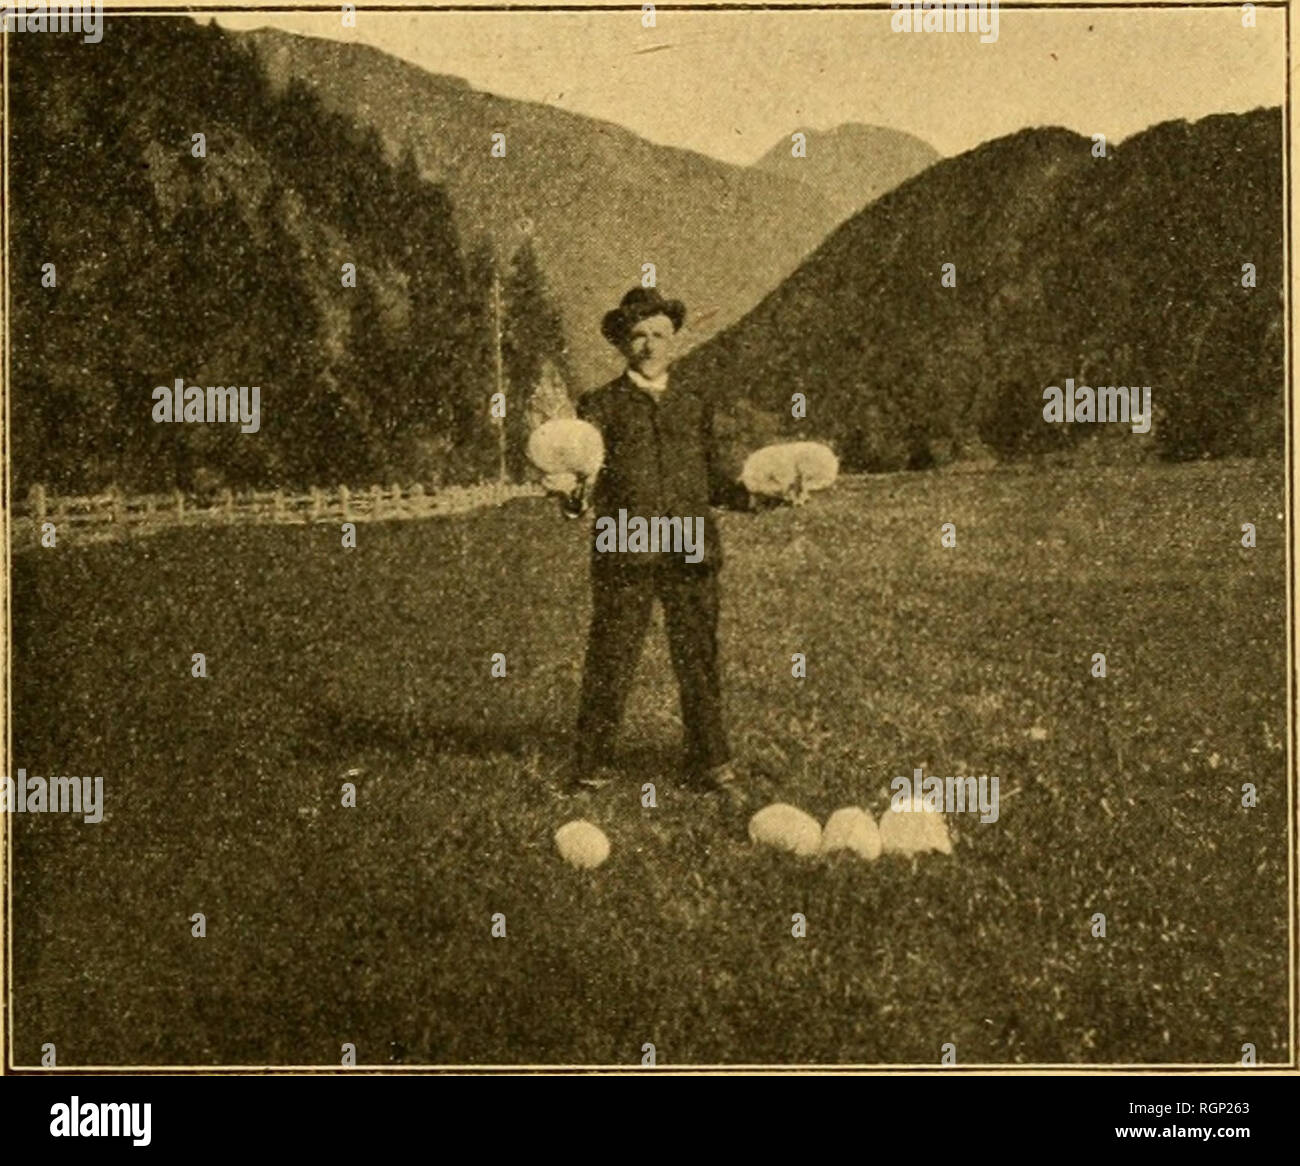 Colosse Stock Photos & Colosse Stock Images - Page 2 - Alamy